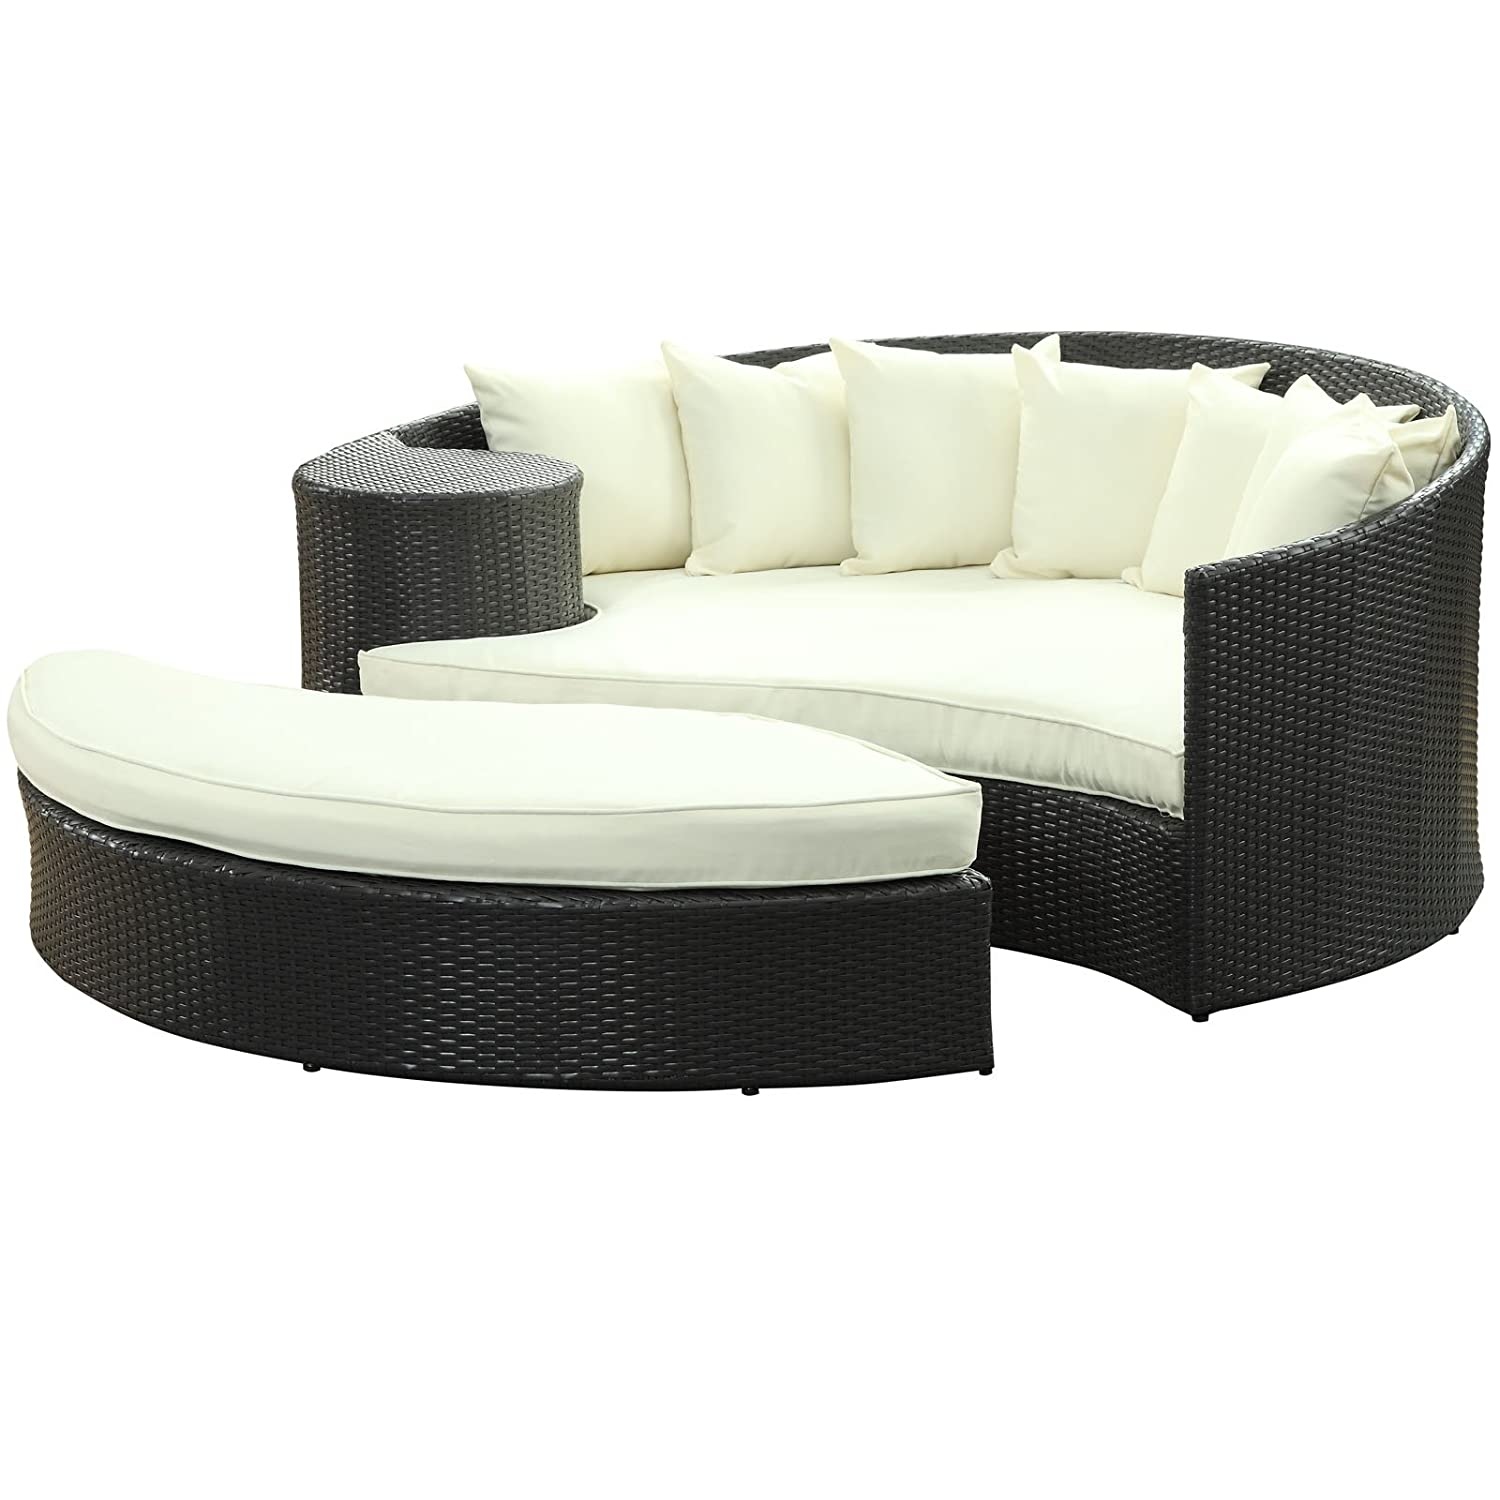 Amazon.com : Modway Taiji Outdoor Patio Daybed In Espresso White : Patio  Sofas : Garden U0026 Outdoor